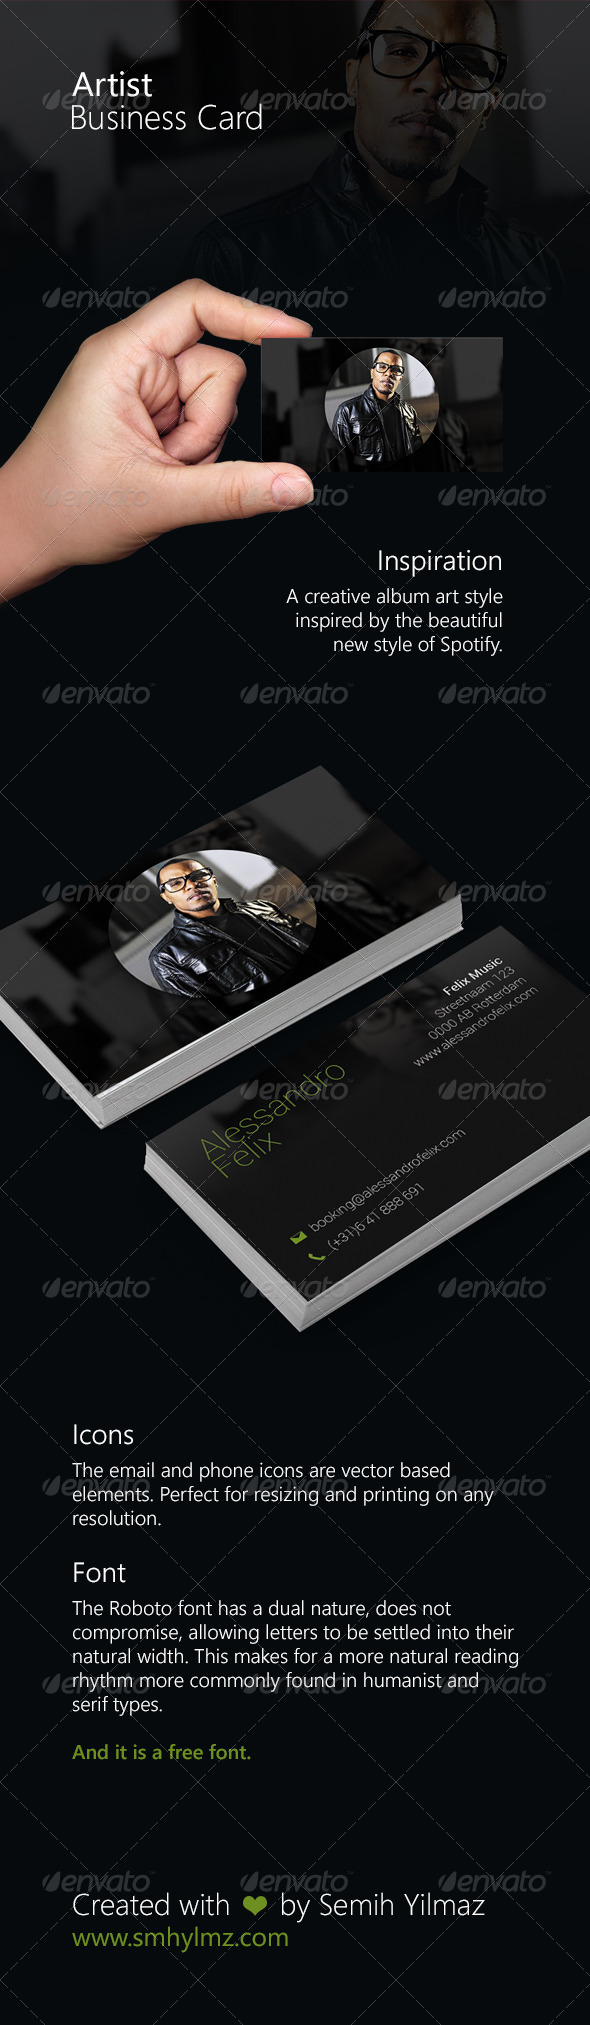 GraphicRiver Artist Business Card 7475042